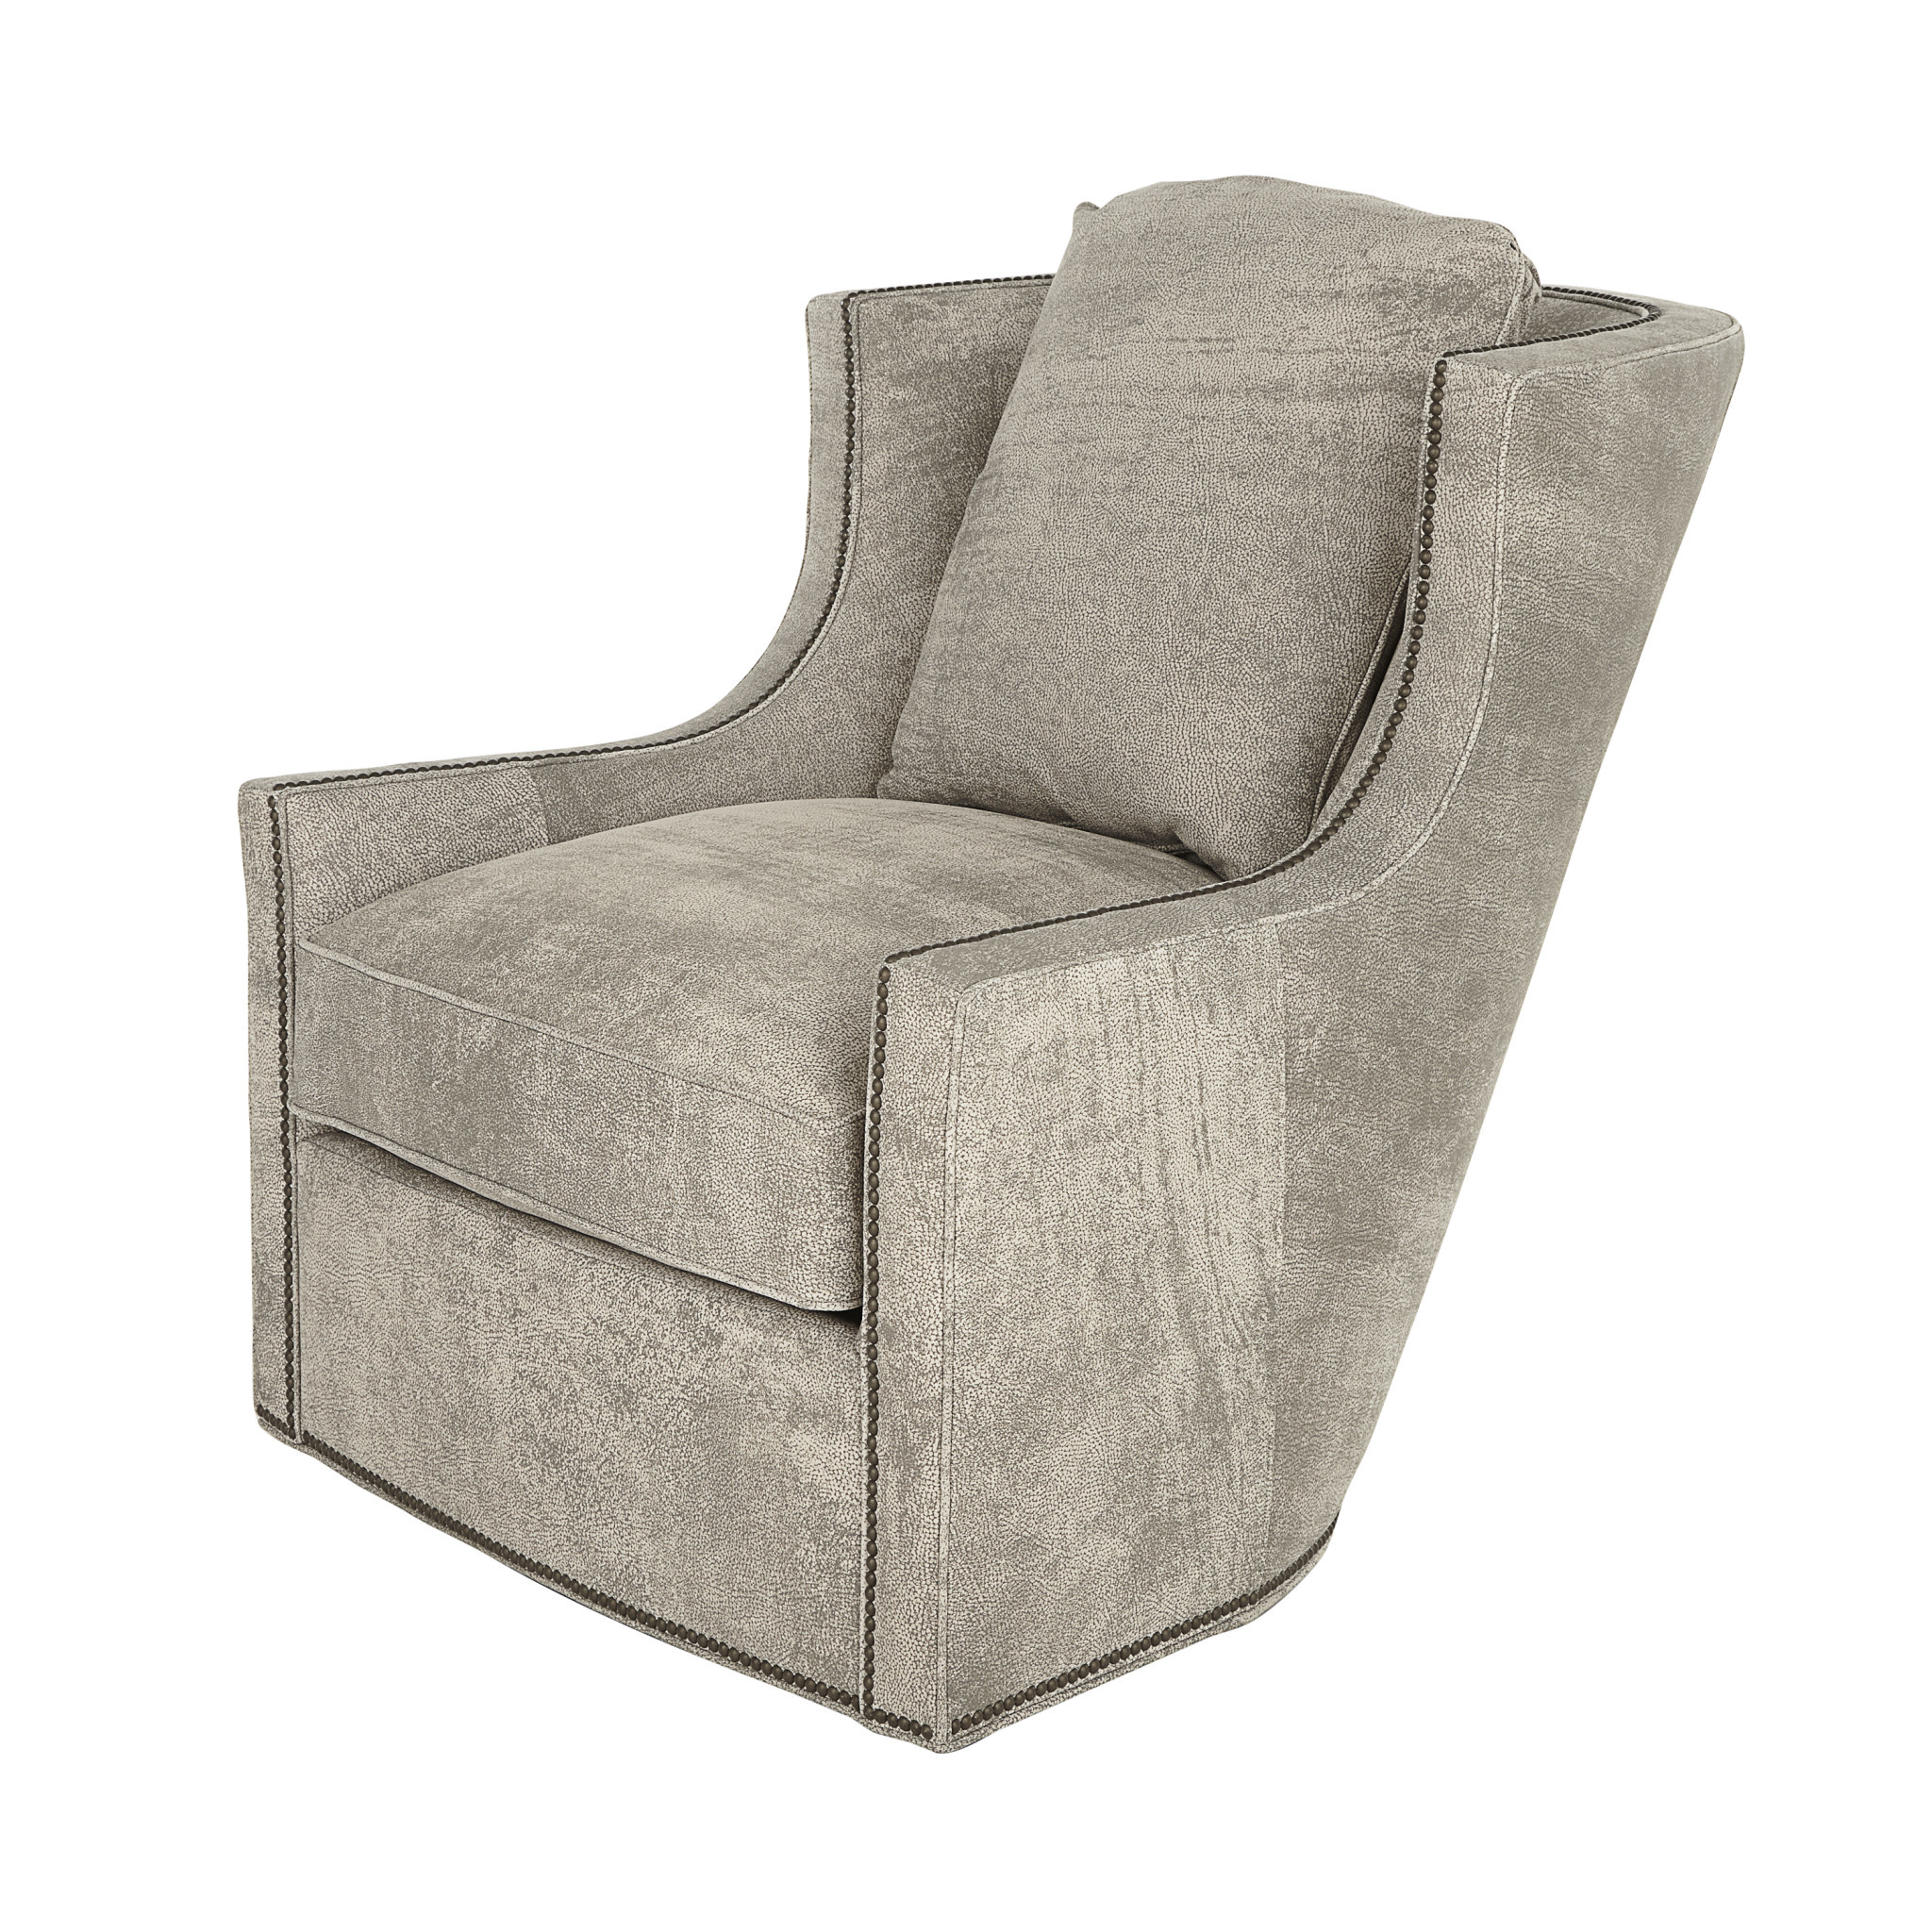 GABLE SWIVEL CHAIR - OUTBACK